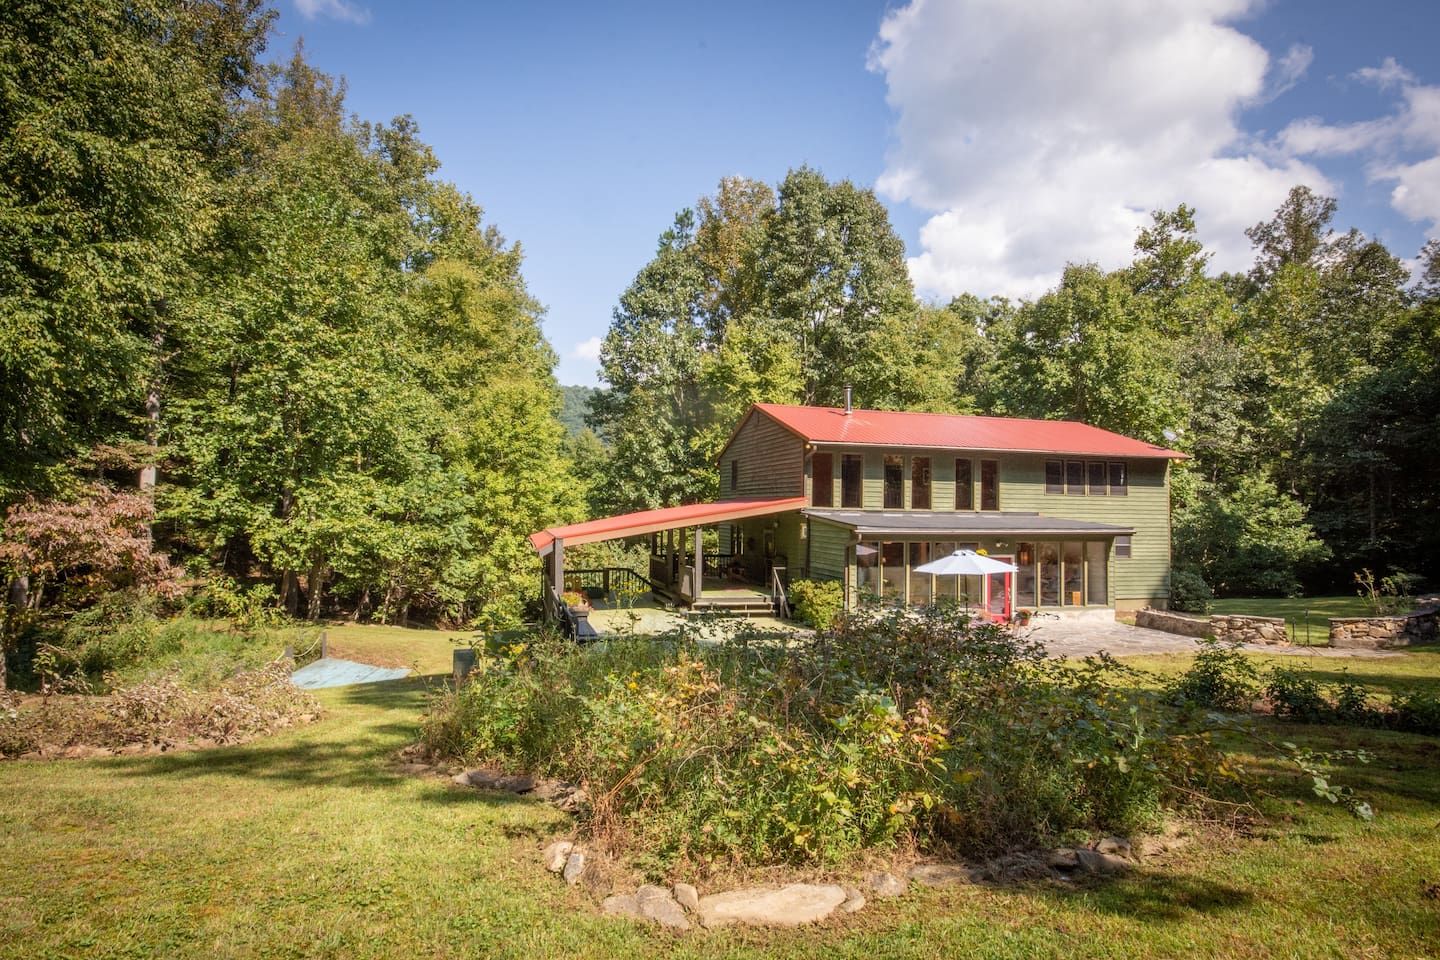 Bright spacious mountain home set in a scenic nature preserve.